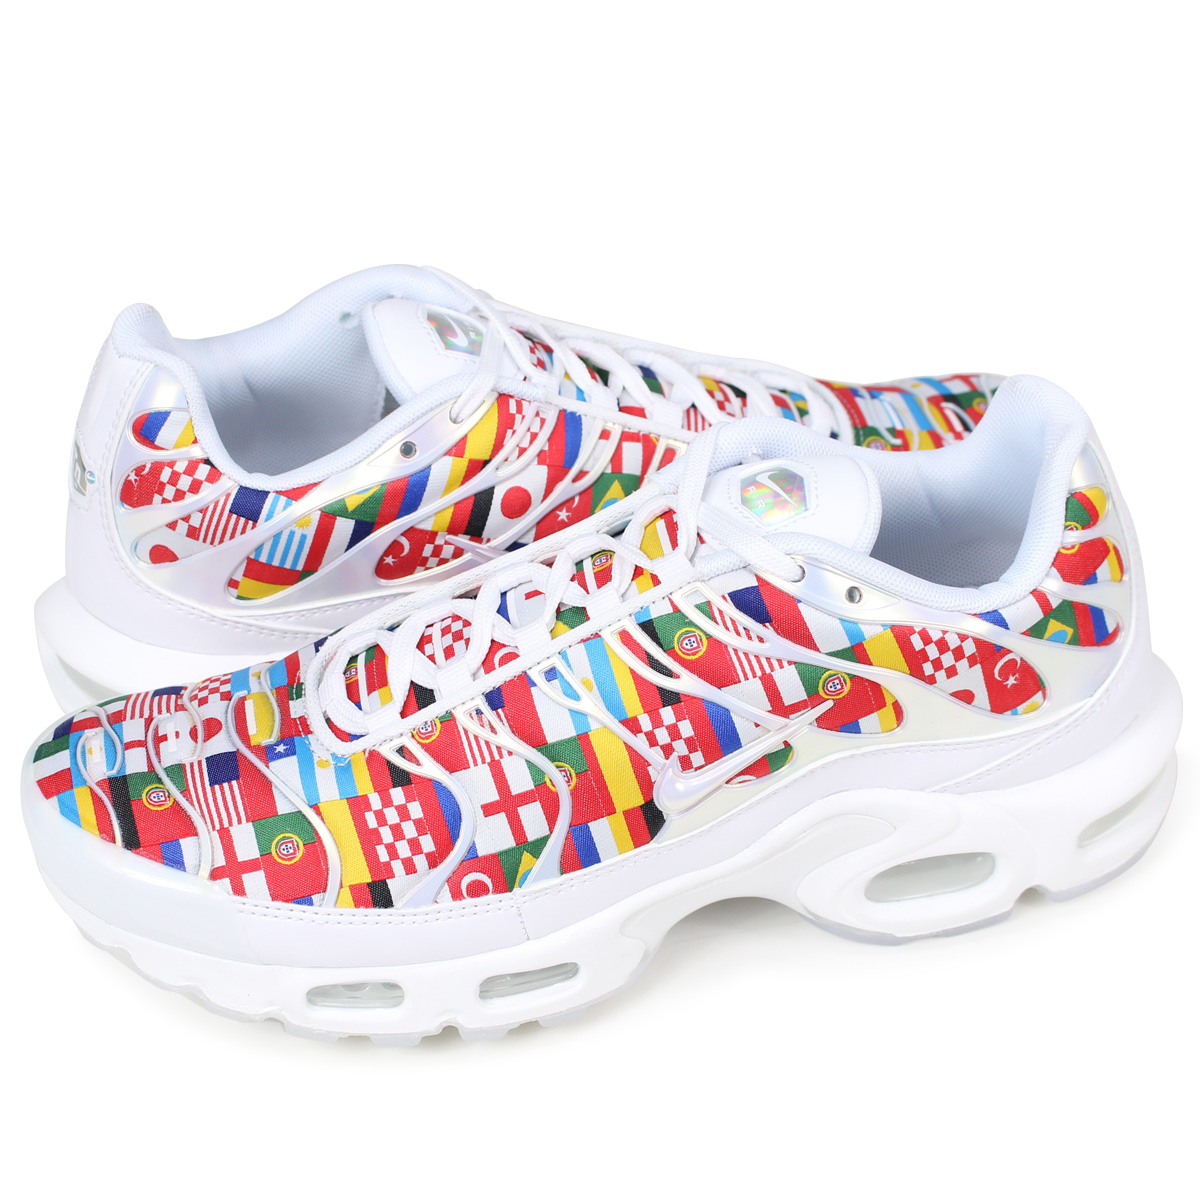 NIKE AIR MAX PLUS NIC QS Kie Ney AMAX plus sneakers men AO5117 100 white [load planned Shinnyu load in reservation product 616 containing]